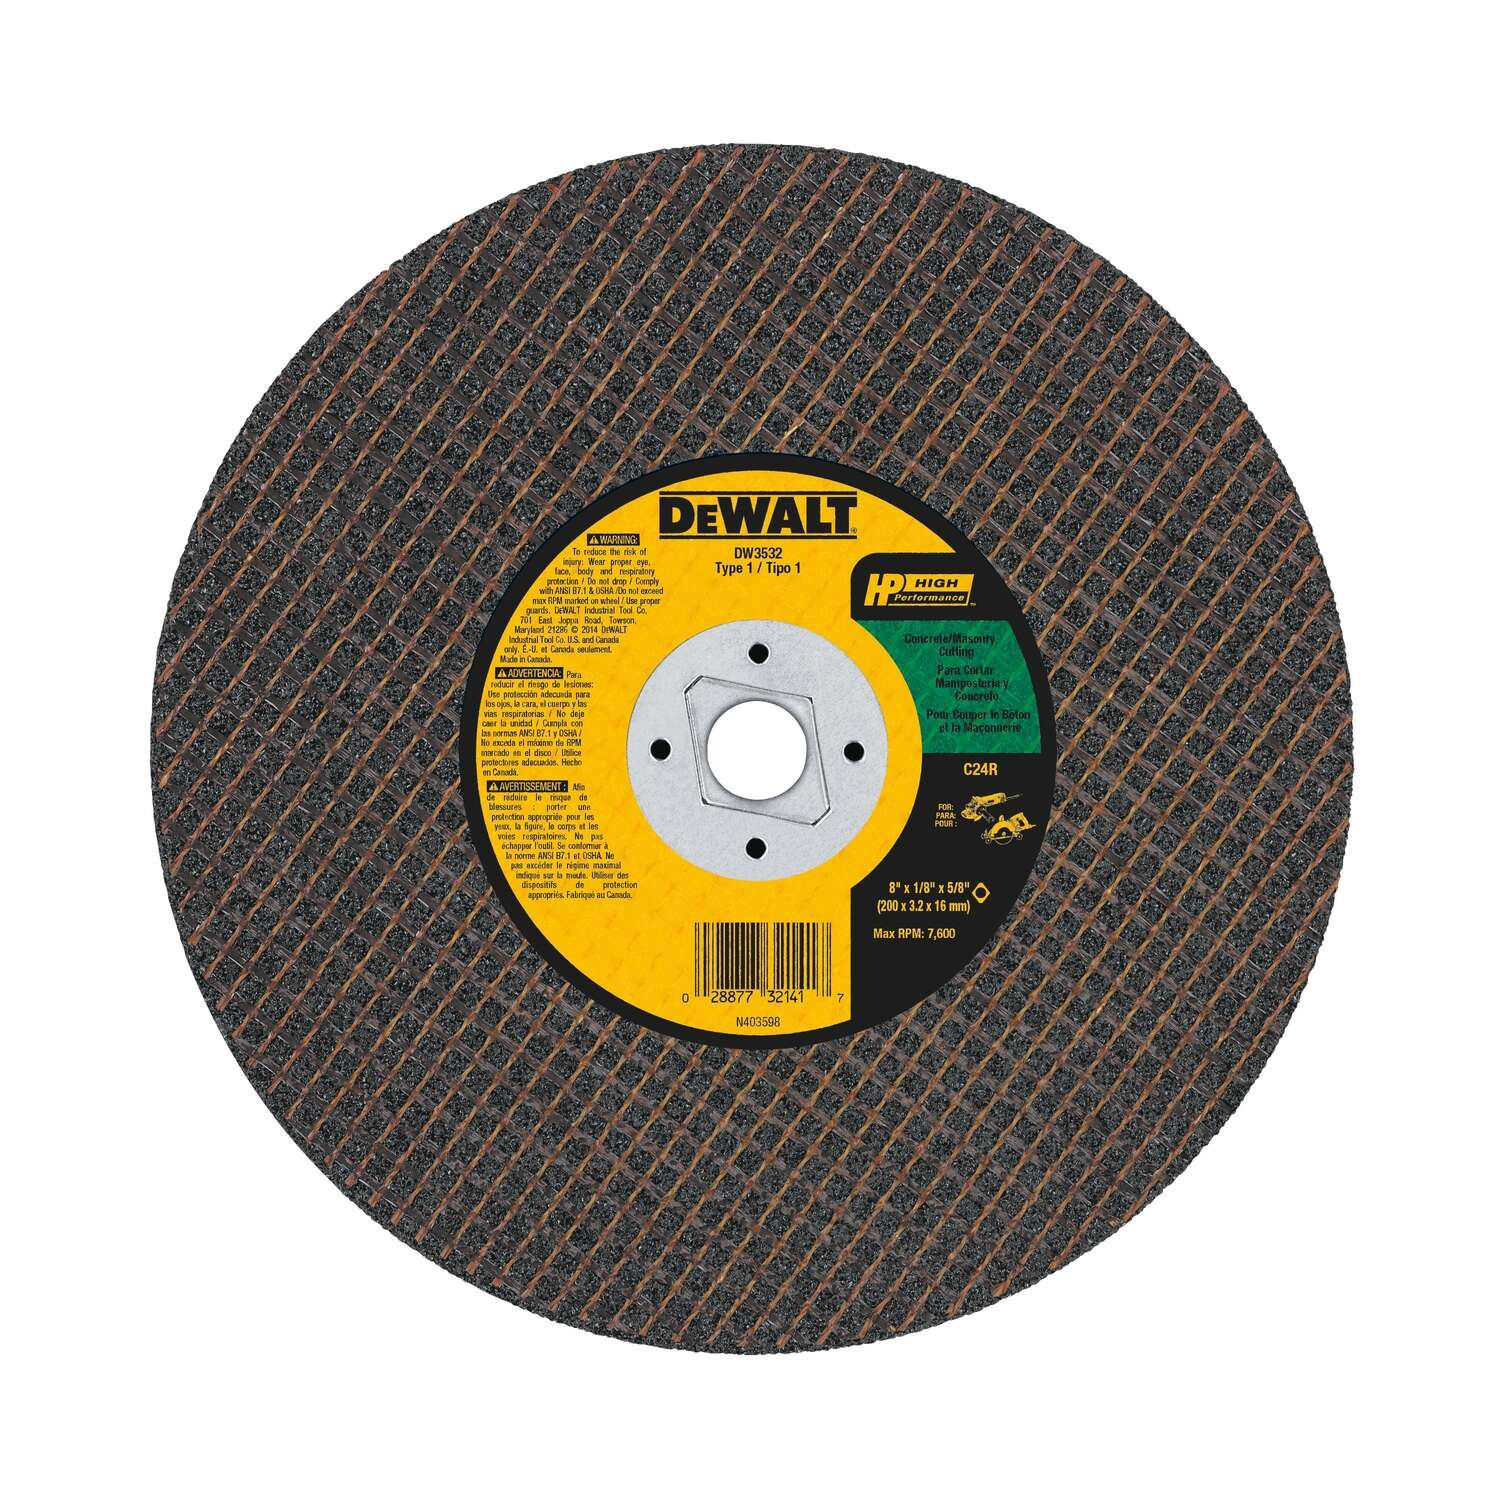 DeWalt High Performance 8 in. Dia. x 5/8 in. Silicon Carbide Masonry Cutting Saw Blade 1 pc.